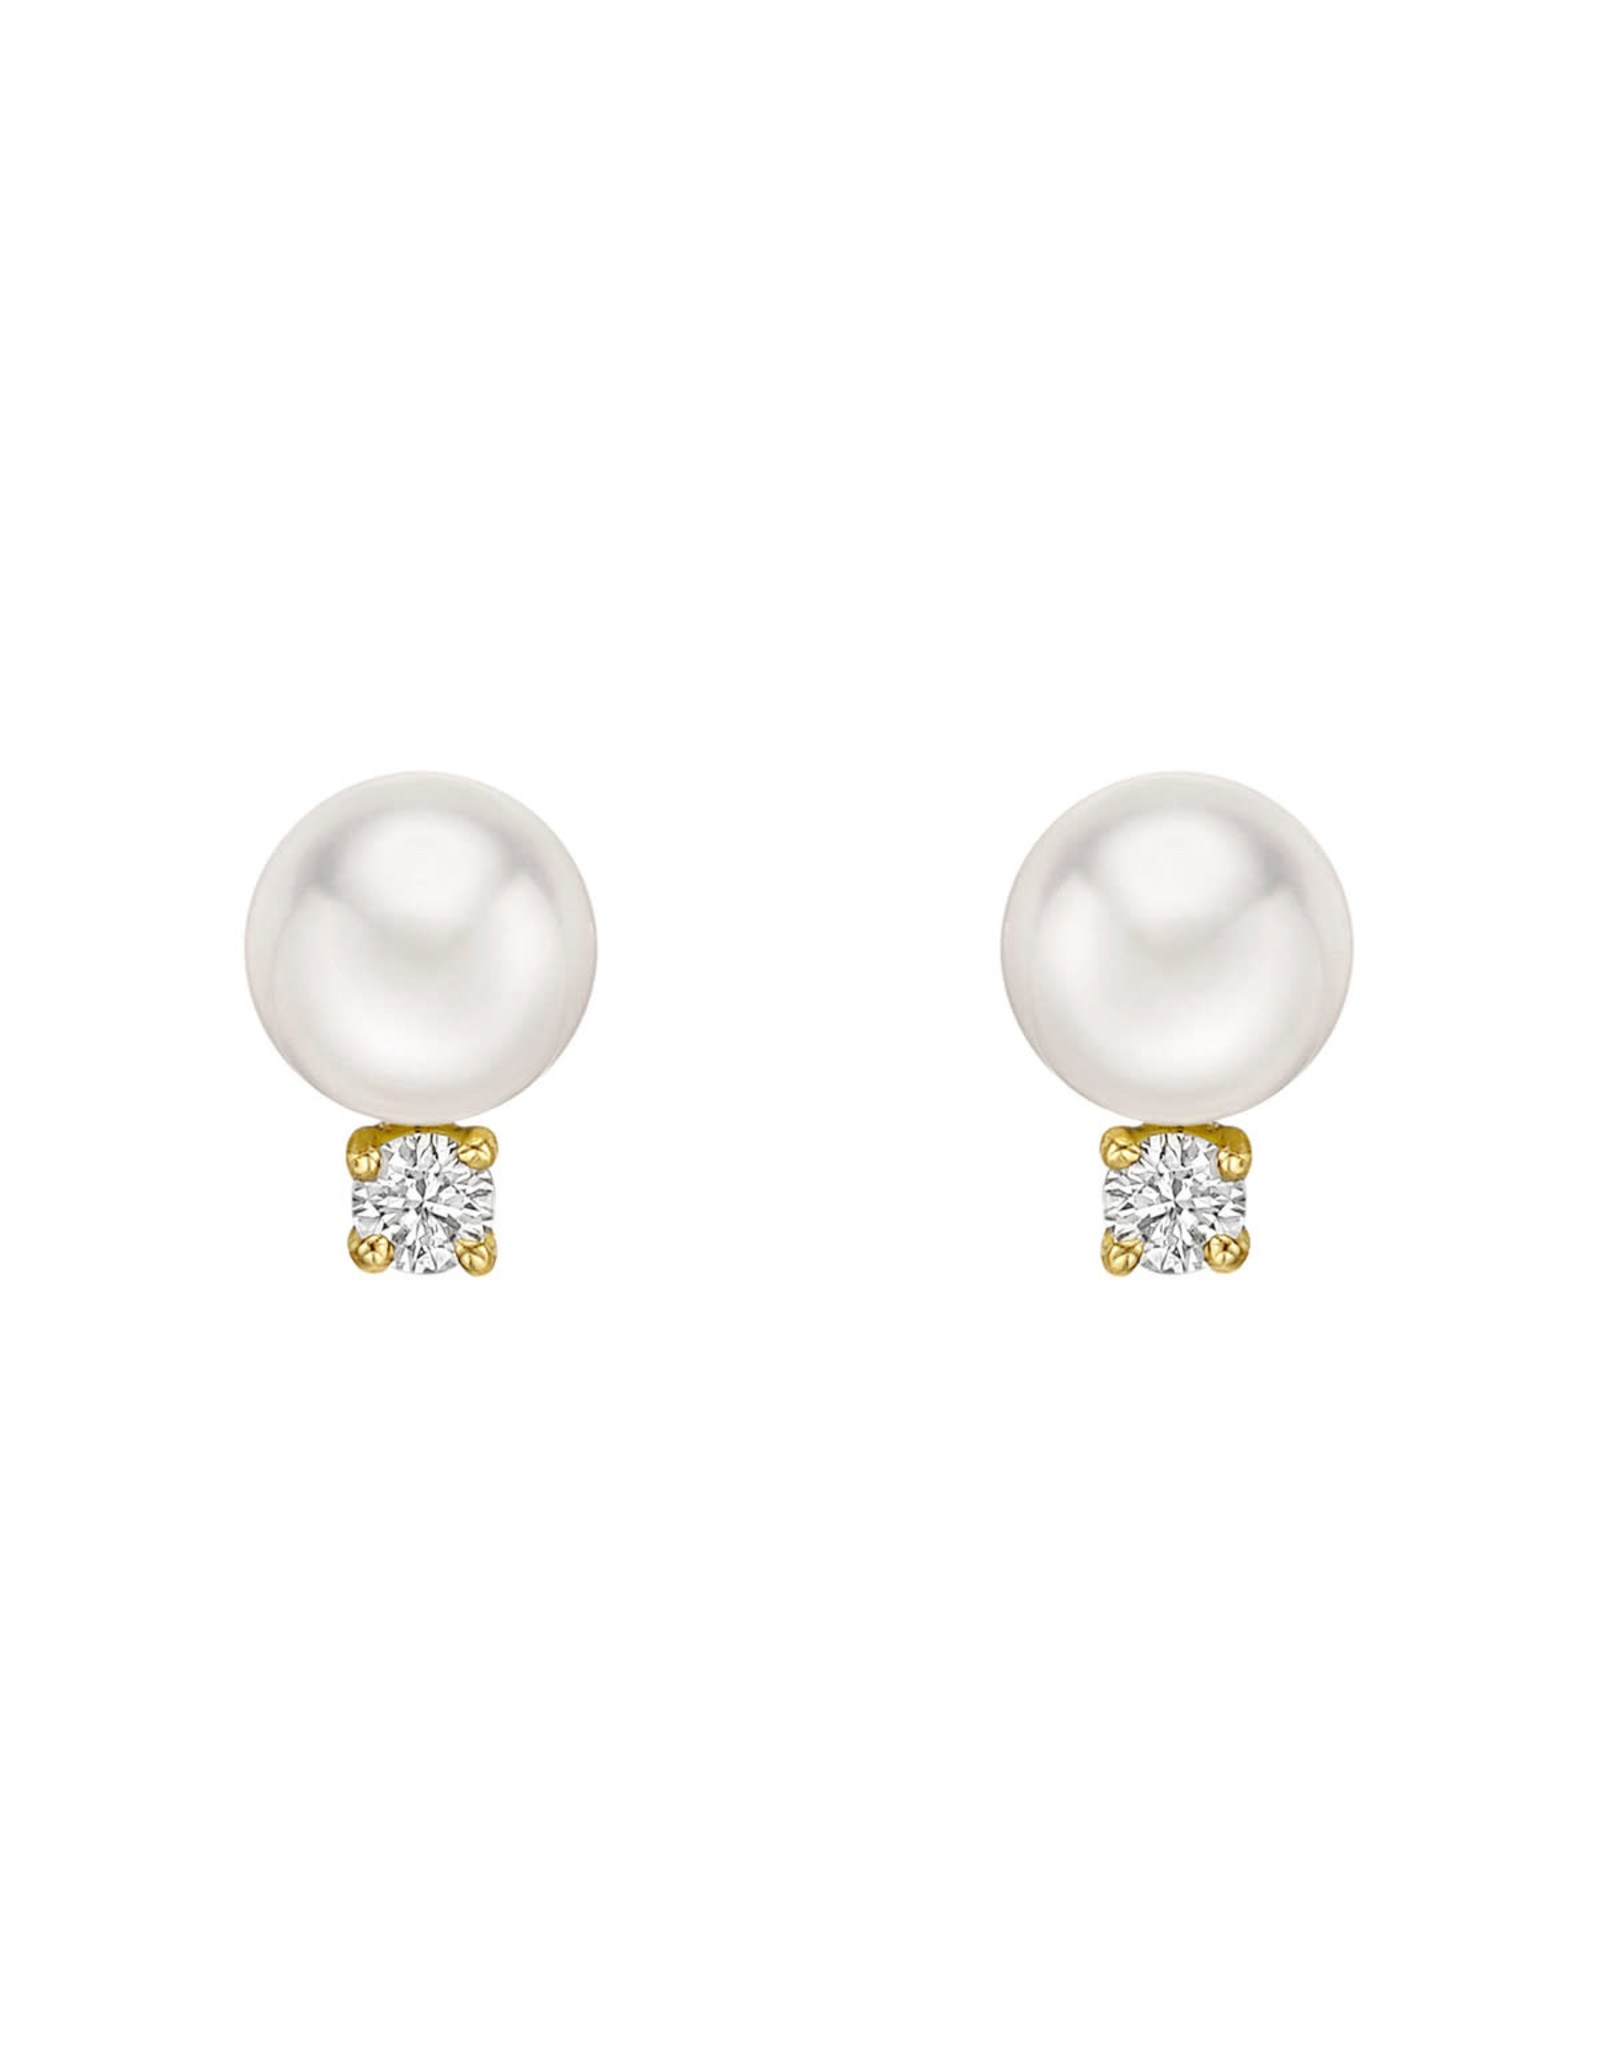 14K Yellow Gold 8mm Pearl and Diamond Stud Earrings, D: 0.14ct